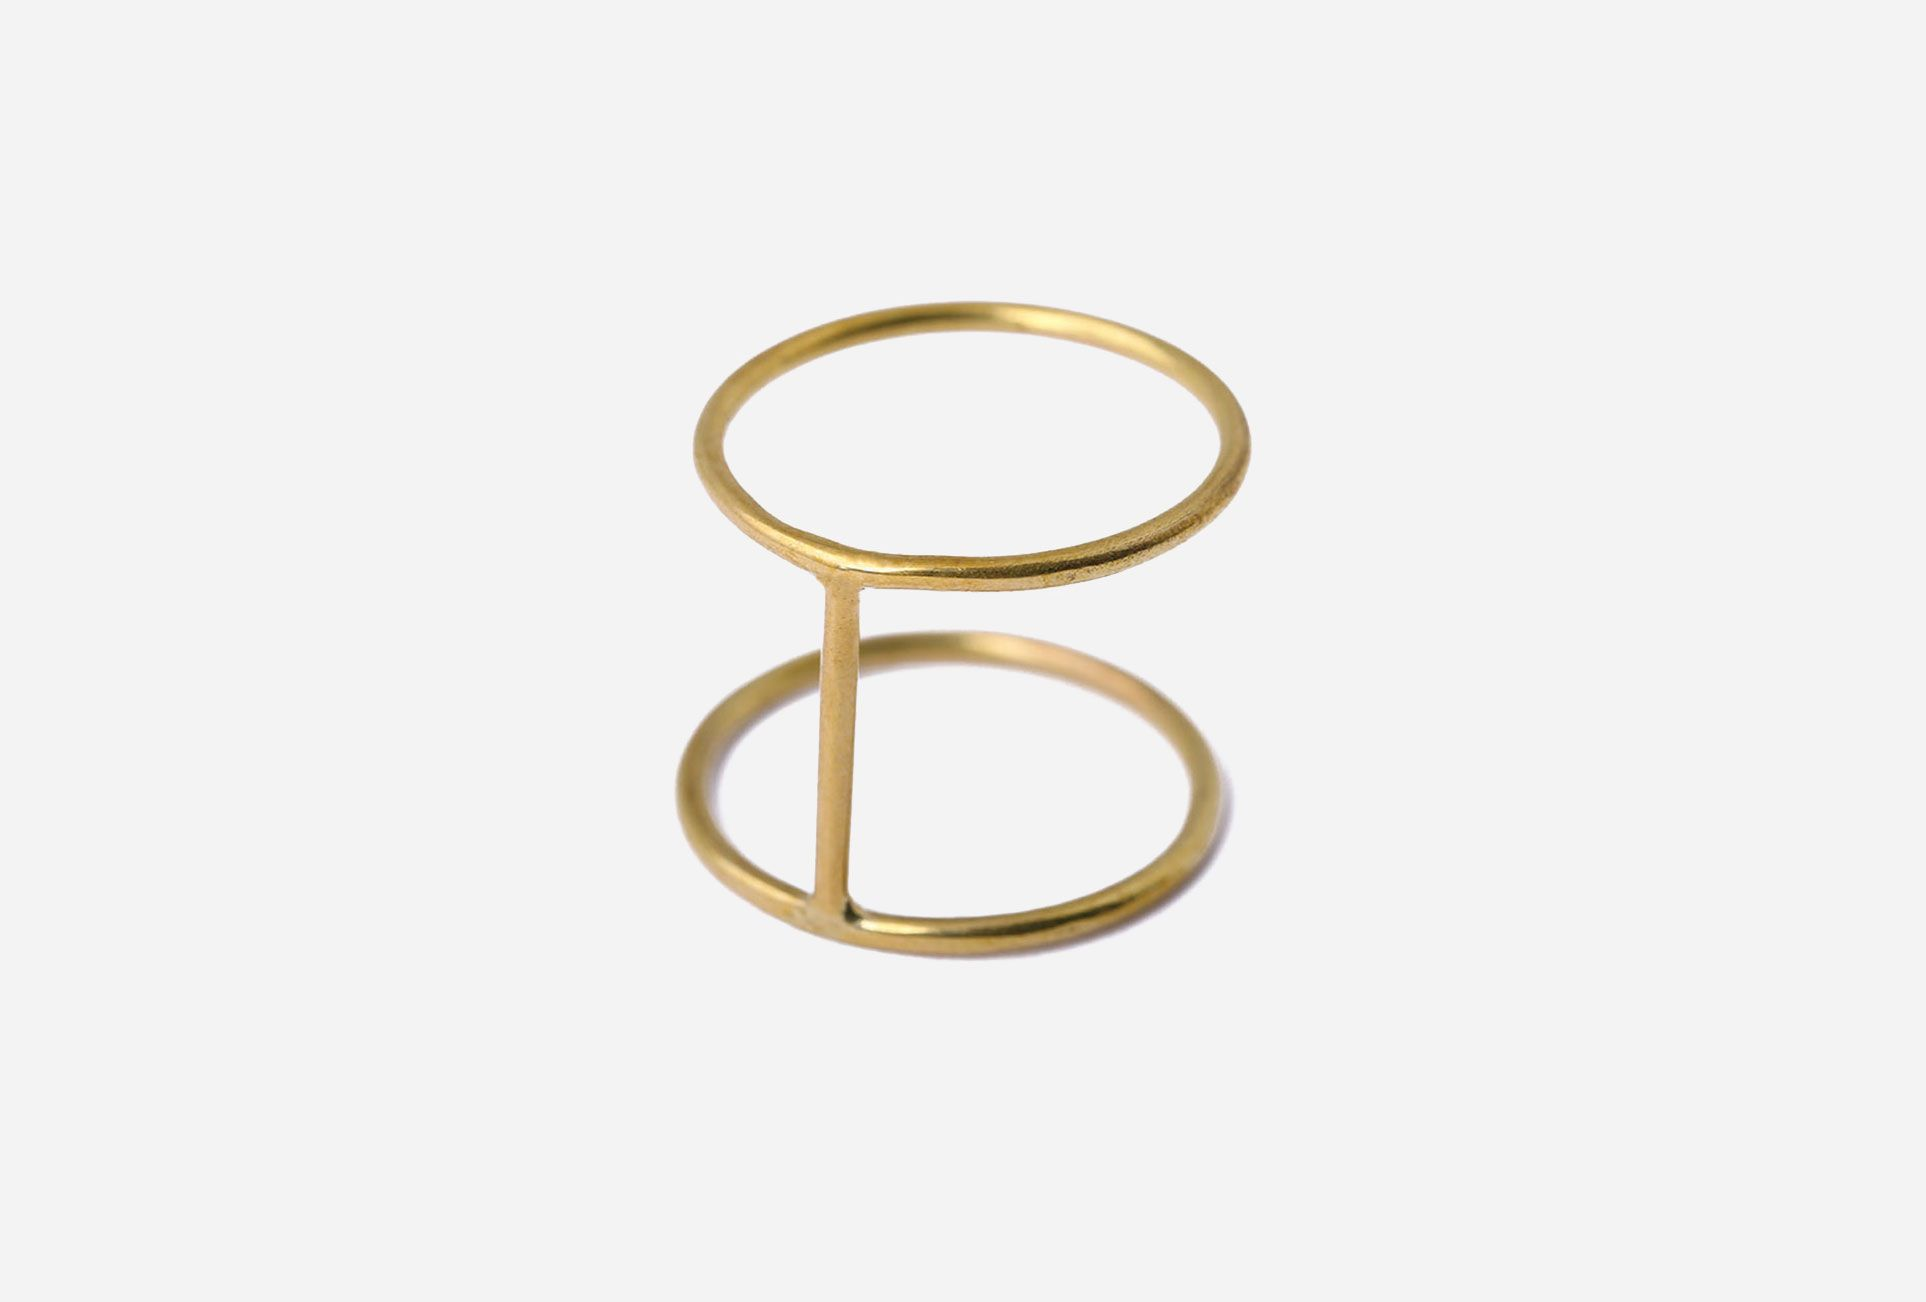 Bring out your edgier side and adorn you finger with this delicate cage ring. Handmade from brass by artisans in Kenya, add some spice to your accessories with